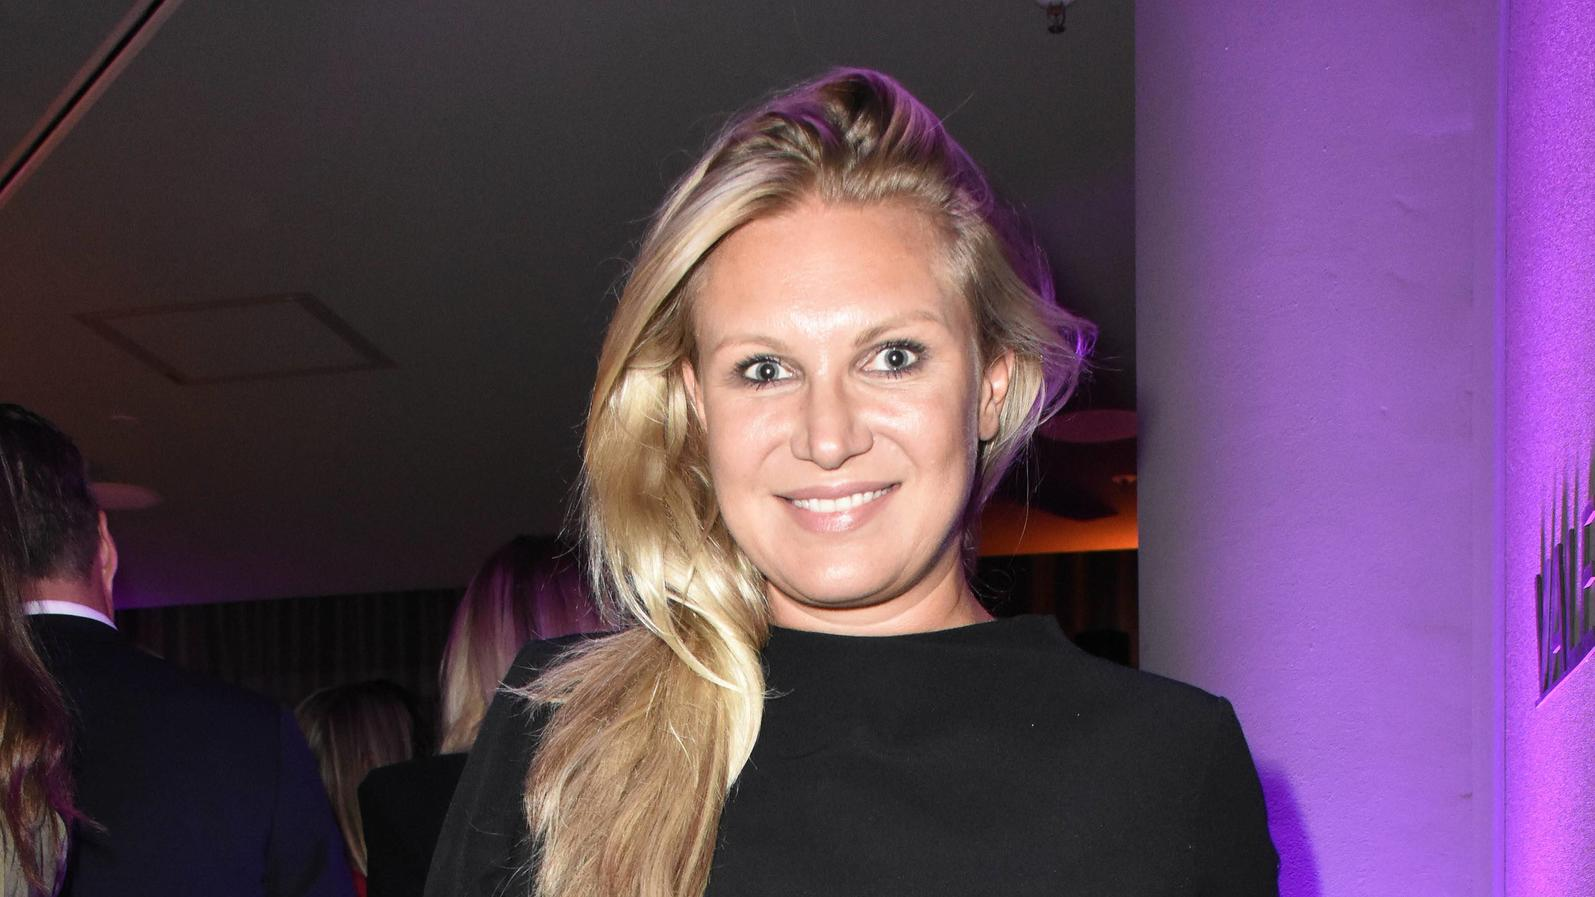 Magdalena Brzeska beim PIXX Lounge Event im Steigenberger Hotel. München, 14.09.2018 *** Magdalena Brzeska at the PIXX Lounge Event at the Steigenberger Hotel Munich 14 09 2018 Foto:xP.xSchönbergerx/xFuturexImage